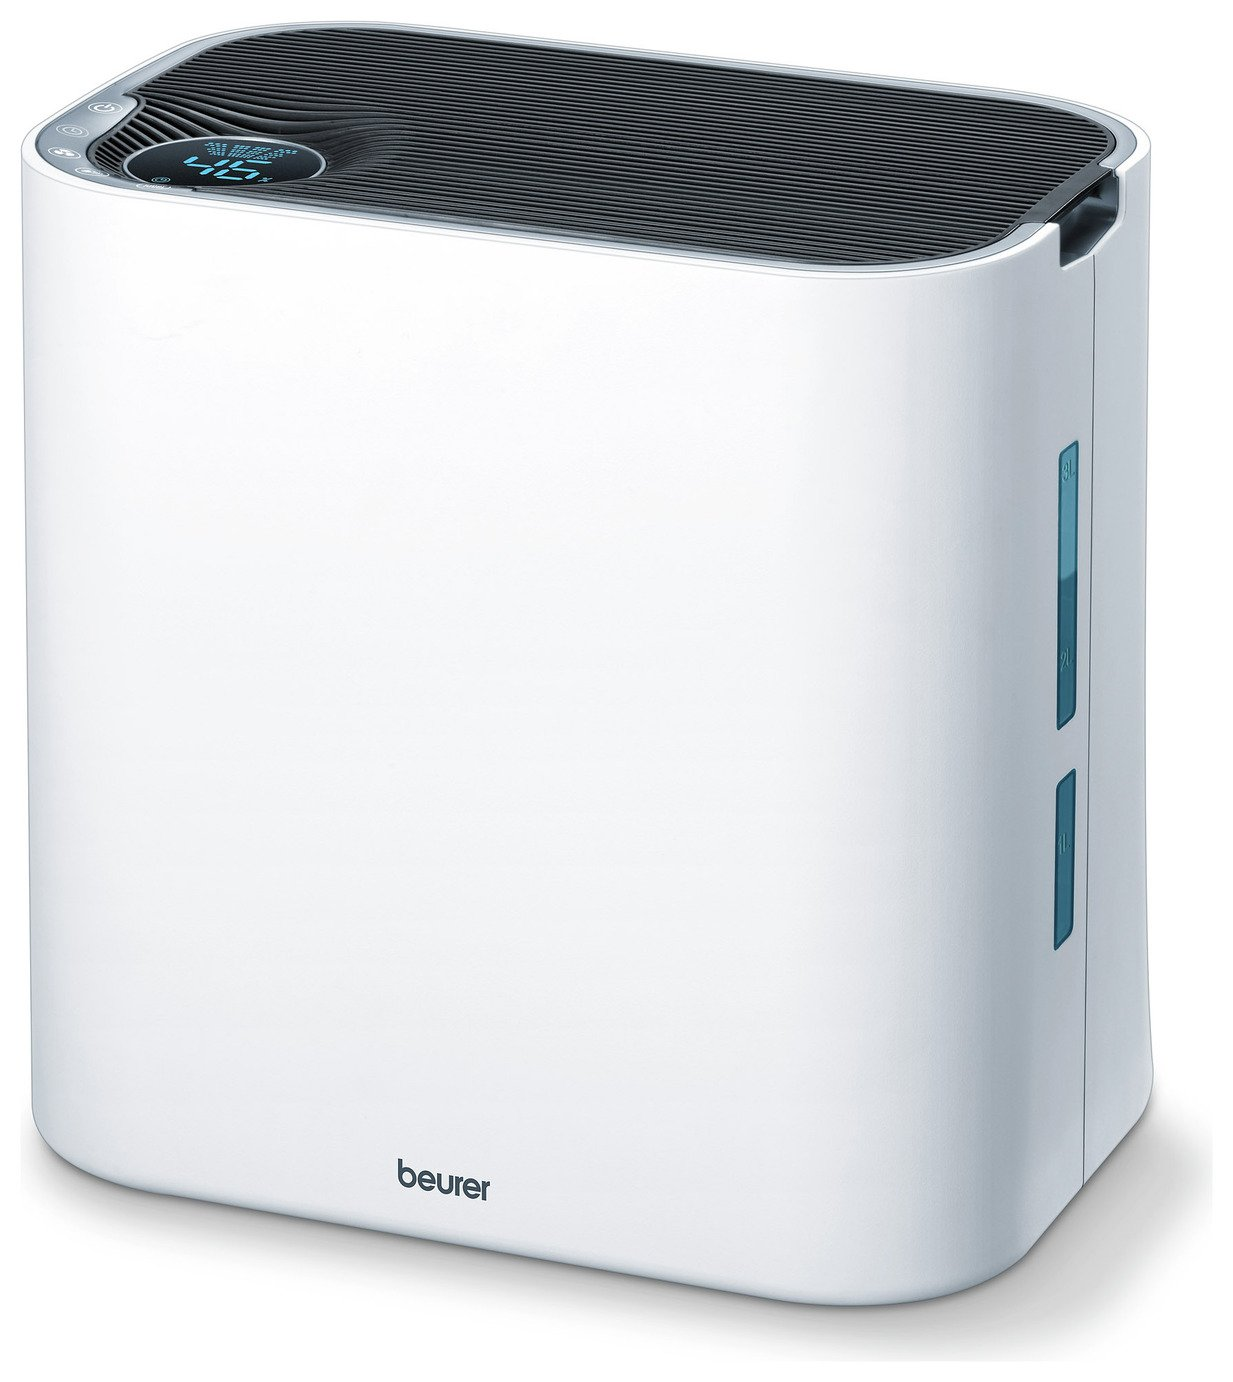 Beurer LR330 2 in 1 Air Cleaner & Humidifier